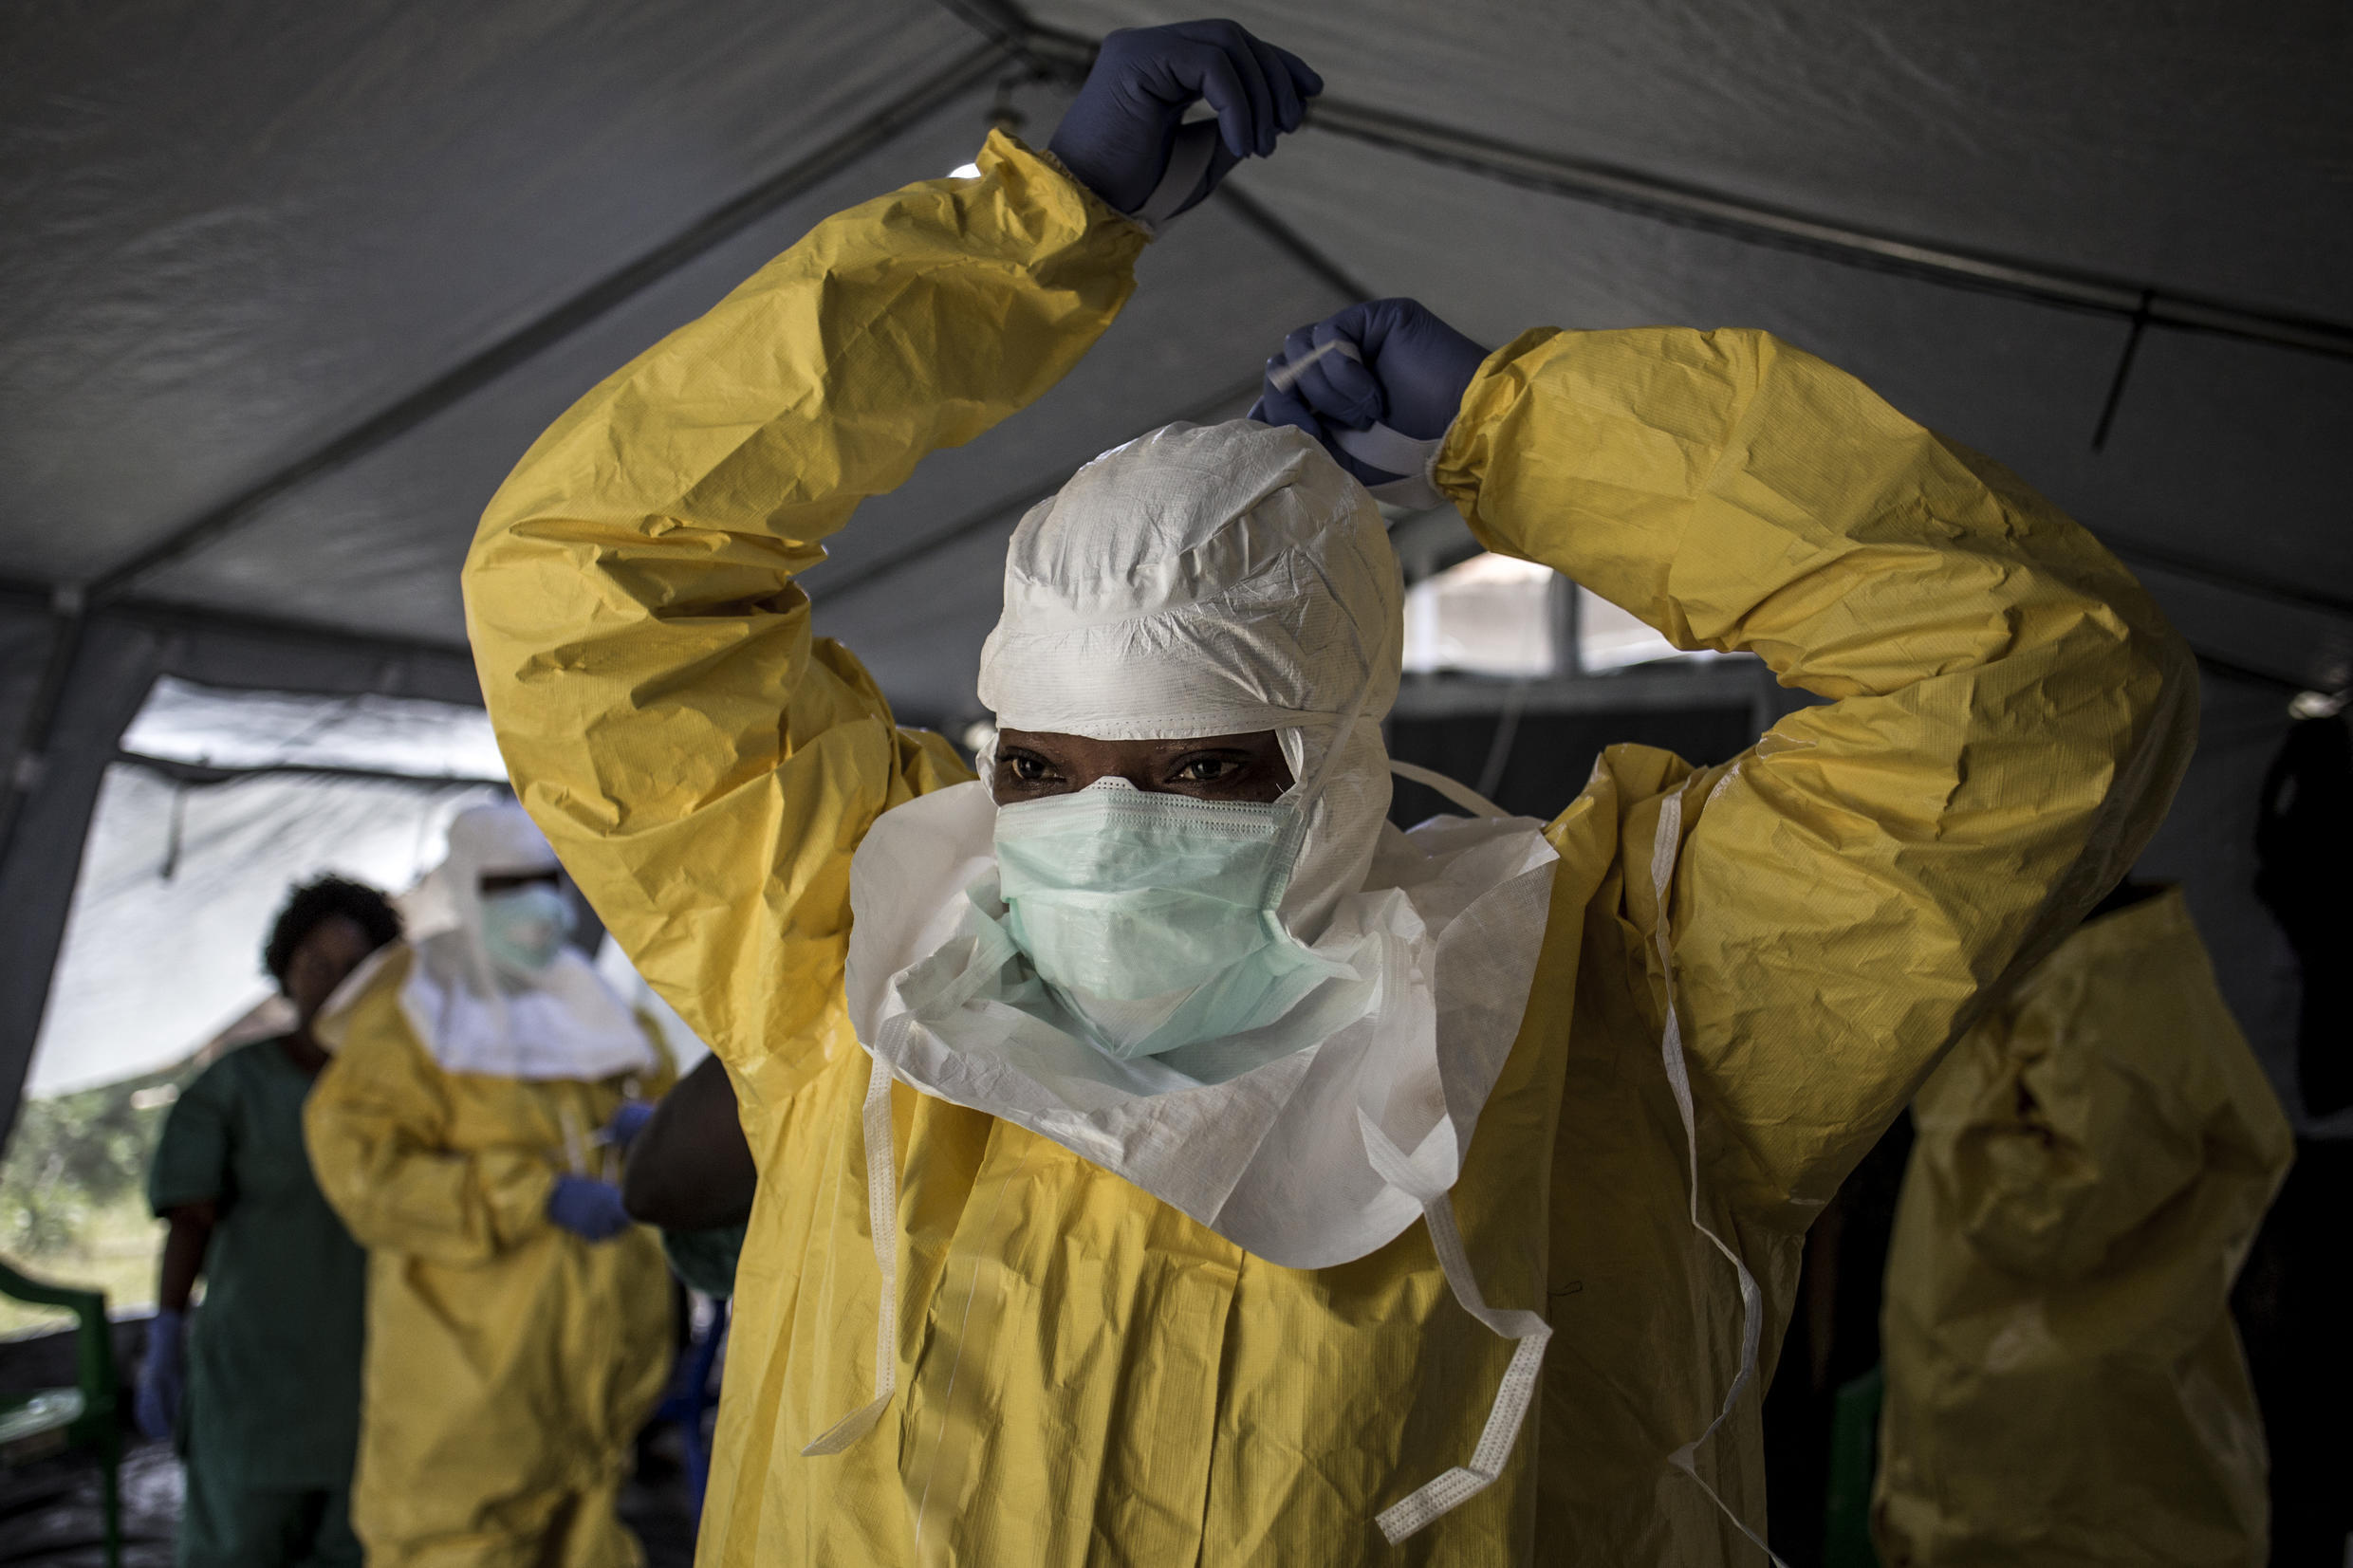 Medical staff put on protective gear before entering an Ebola treatment centre in the northeastern city of Beni, Democratic Republic of Congo, August 18, 2018.